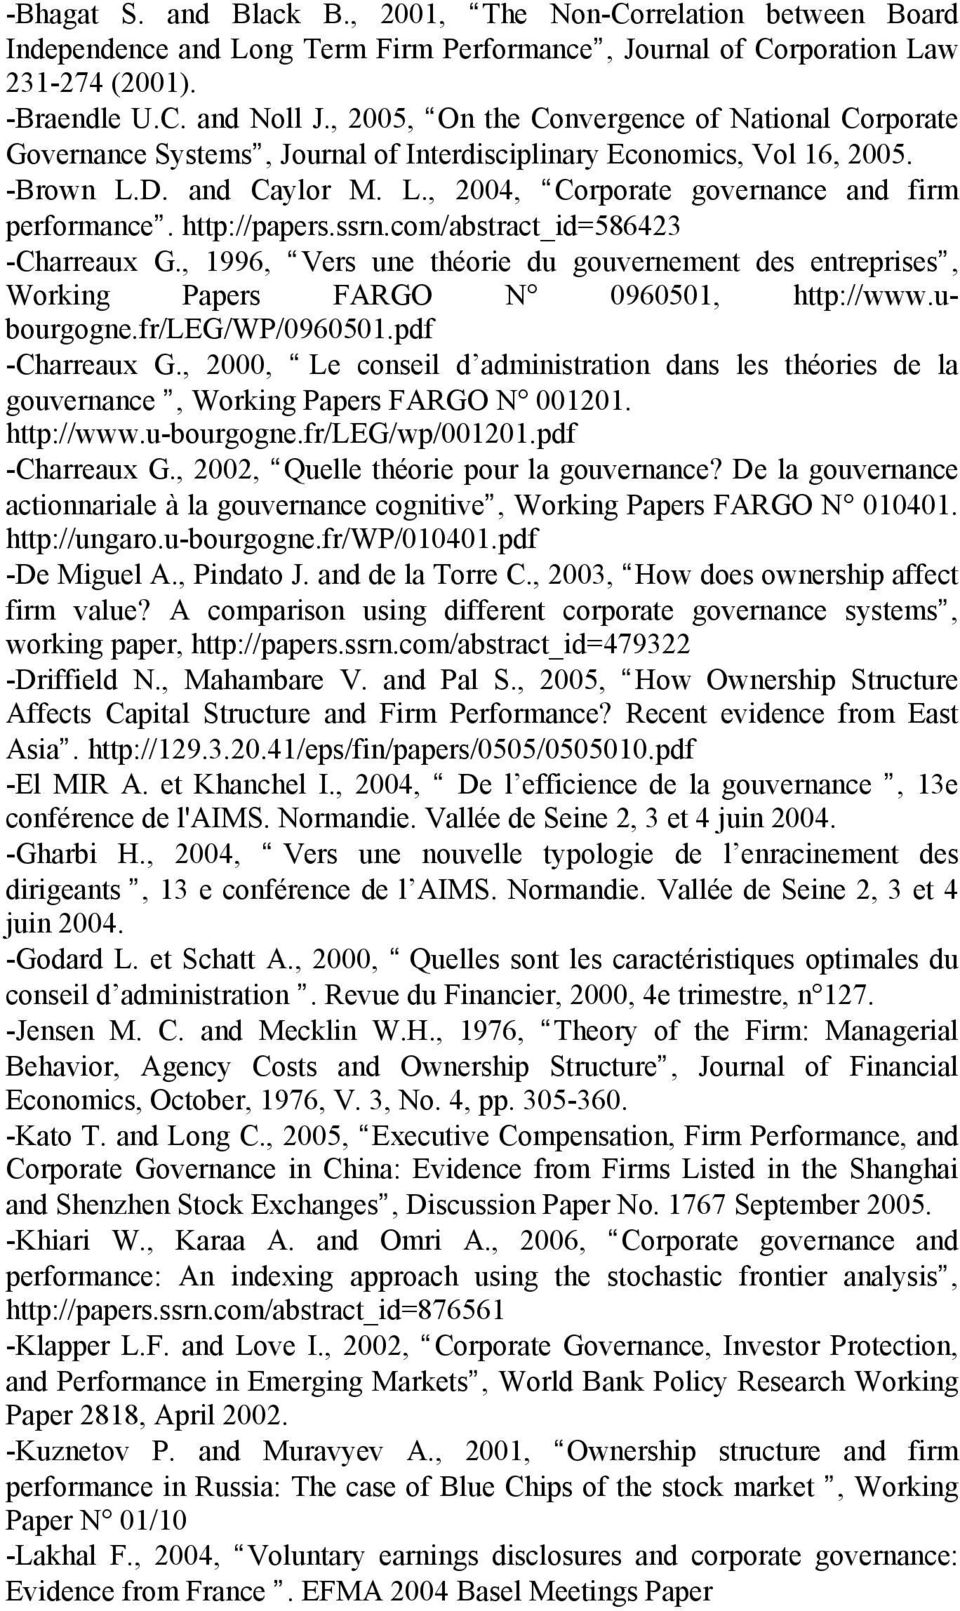 http://papers.ssrn.com/abstract_id=586423 -Charreaux G., 1996, Vers une théorie du gouvernement des entreprises, Working Papers FARGO N 0960501, http://www.ubourgogne.fr/leg/wp/0960501.